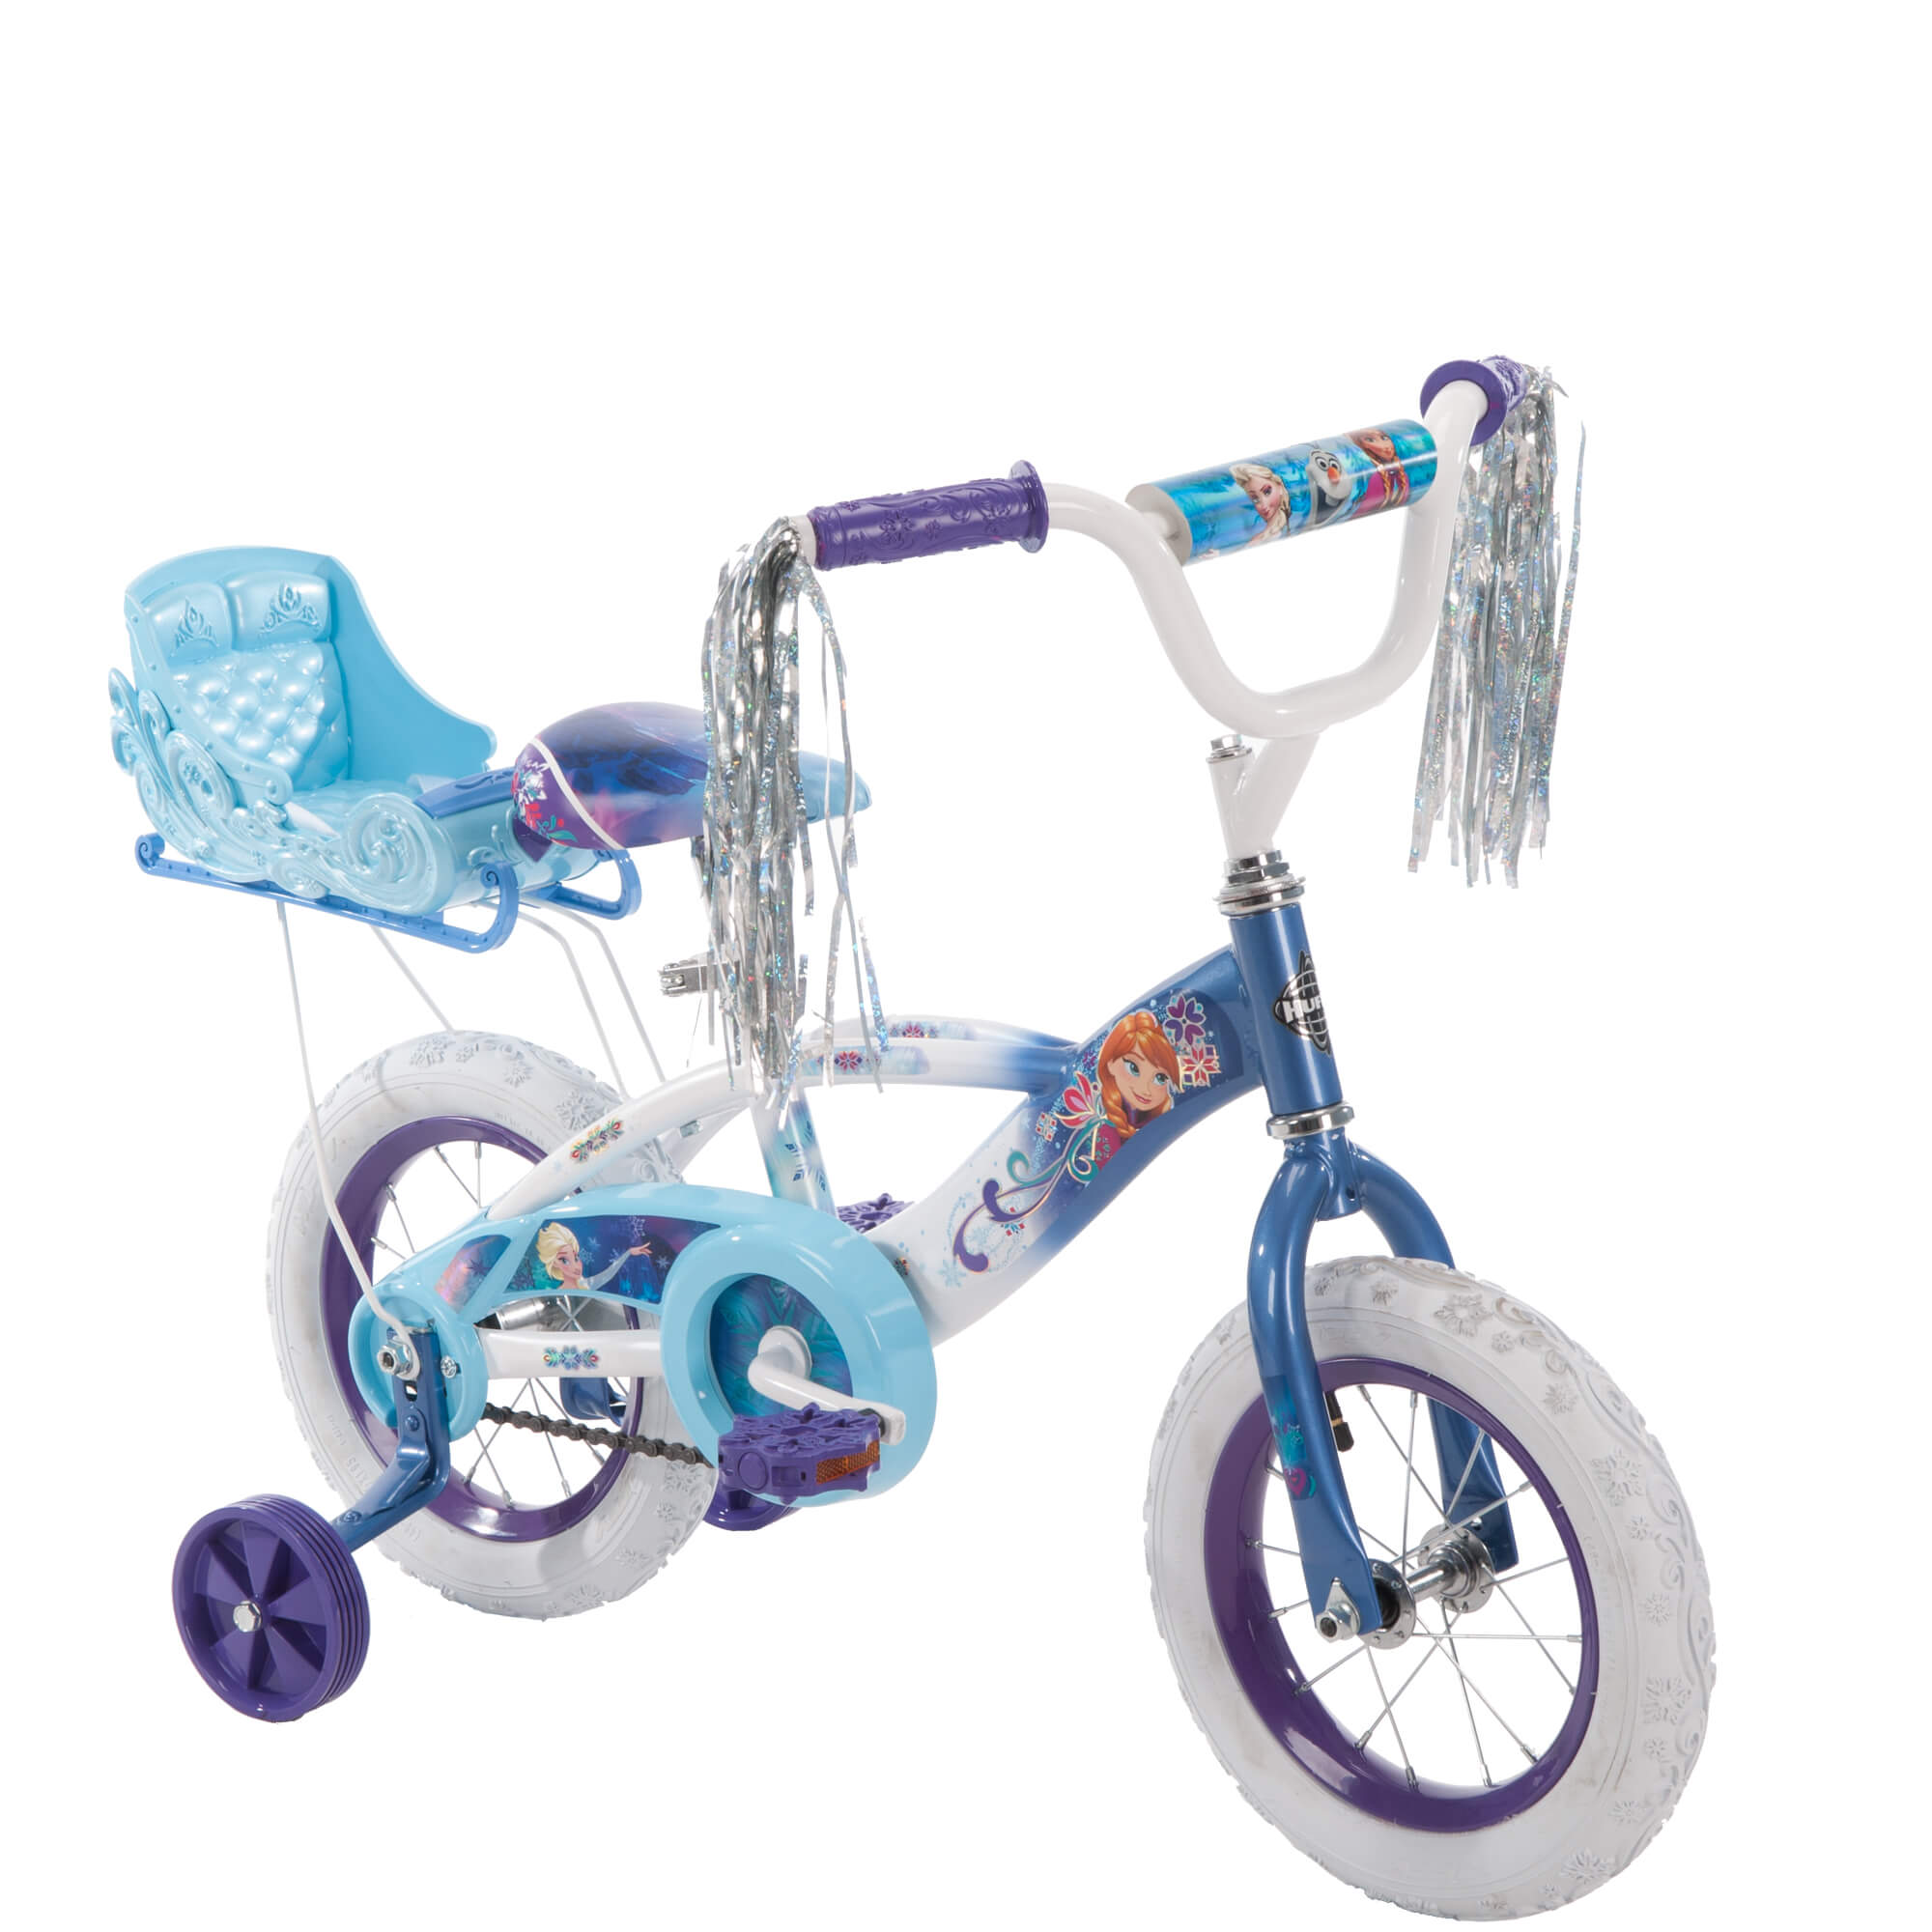 "Disney Frozen 12"" Blue Girls' Bike with Sleigh, by Huffy by Huffy"